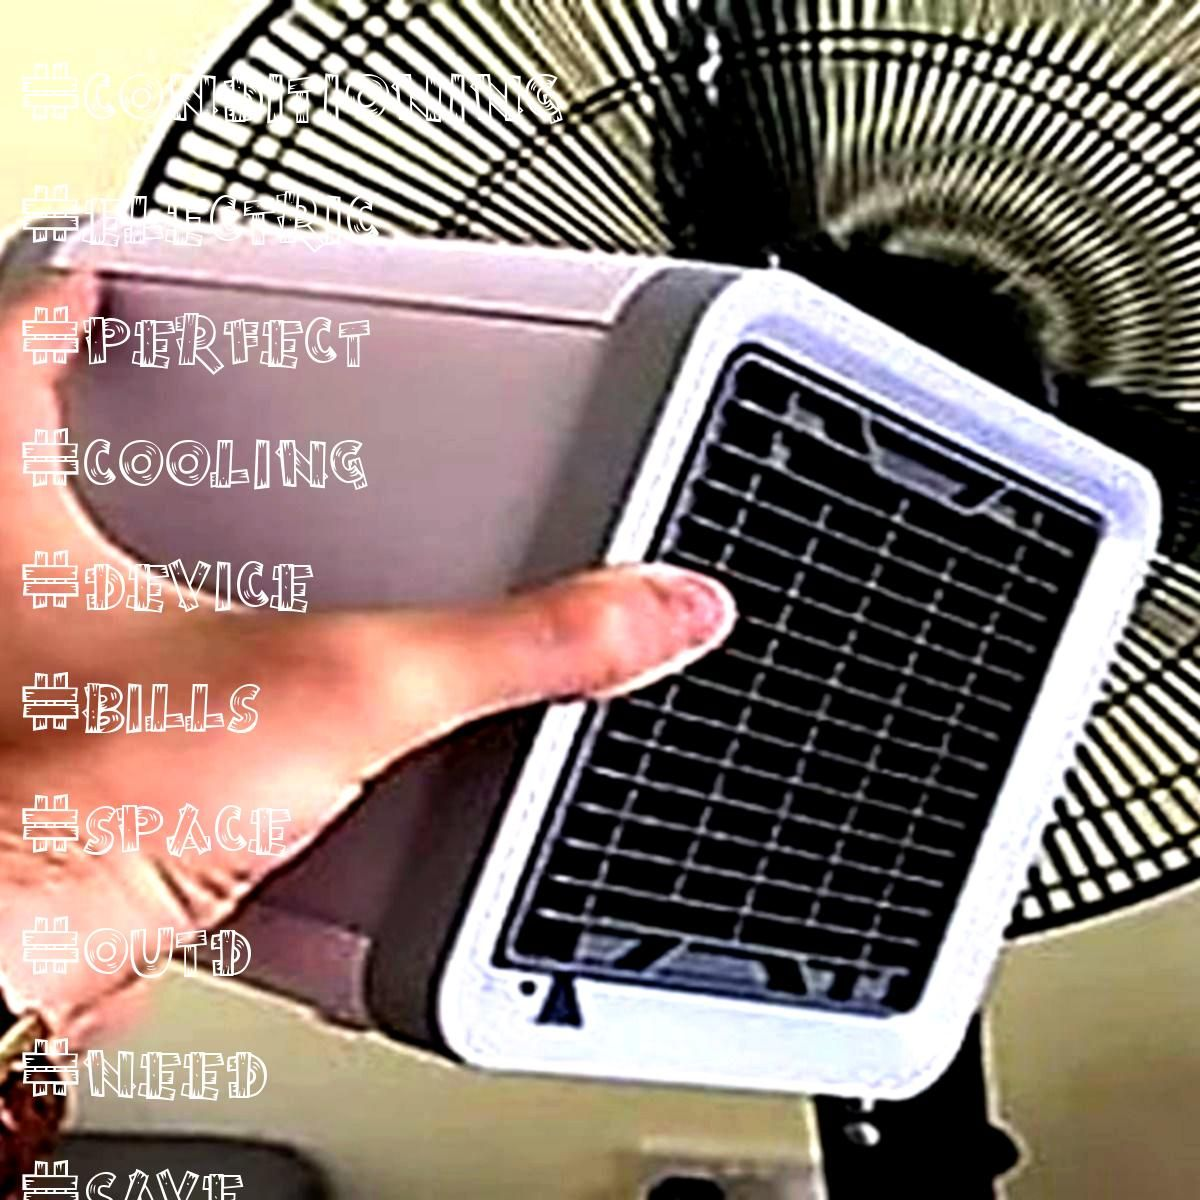 Need For Air Conditioning With This New Device New air cooling device can make any hot space cool and save big on electric bills Perfect for outdNo Need For Air Condition...